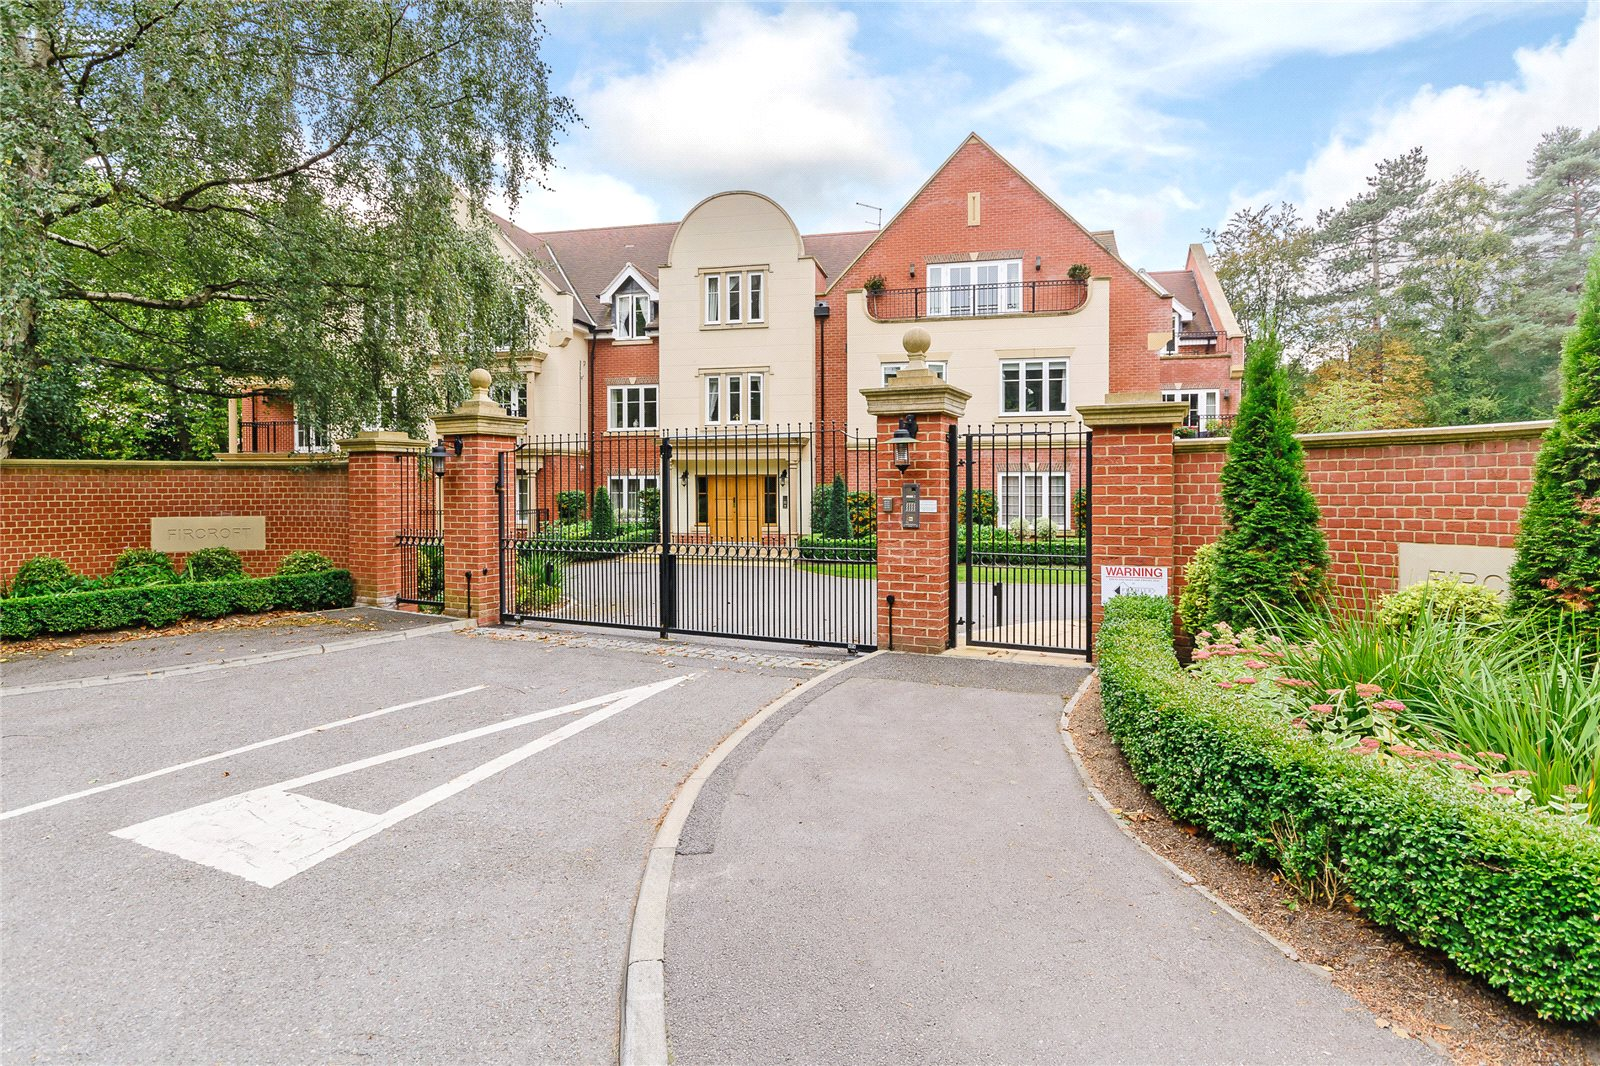 公寓 為 出售 在 Devenish Road, Sunningdale, Ascot, Berkshire, SL5 Ascot, 英格蘭